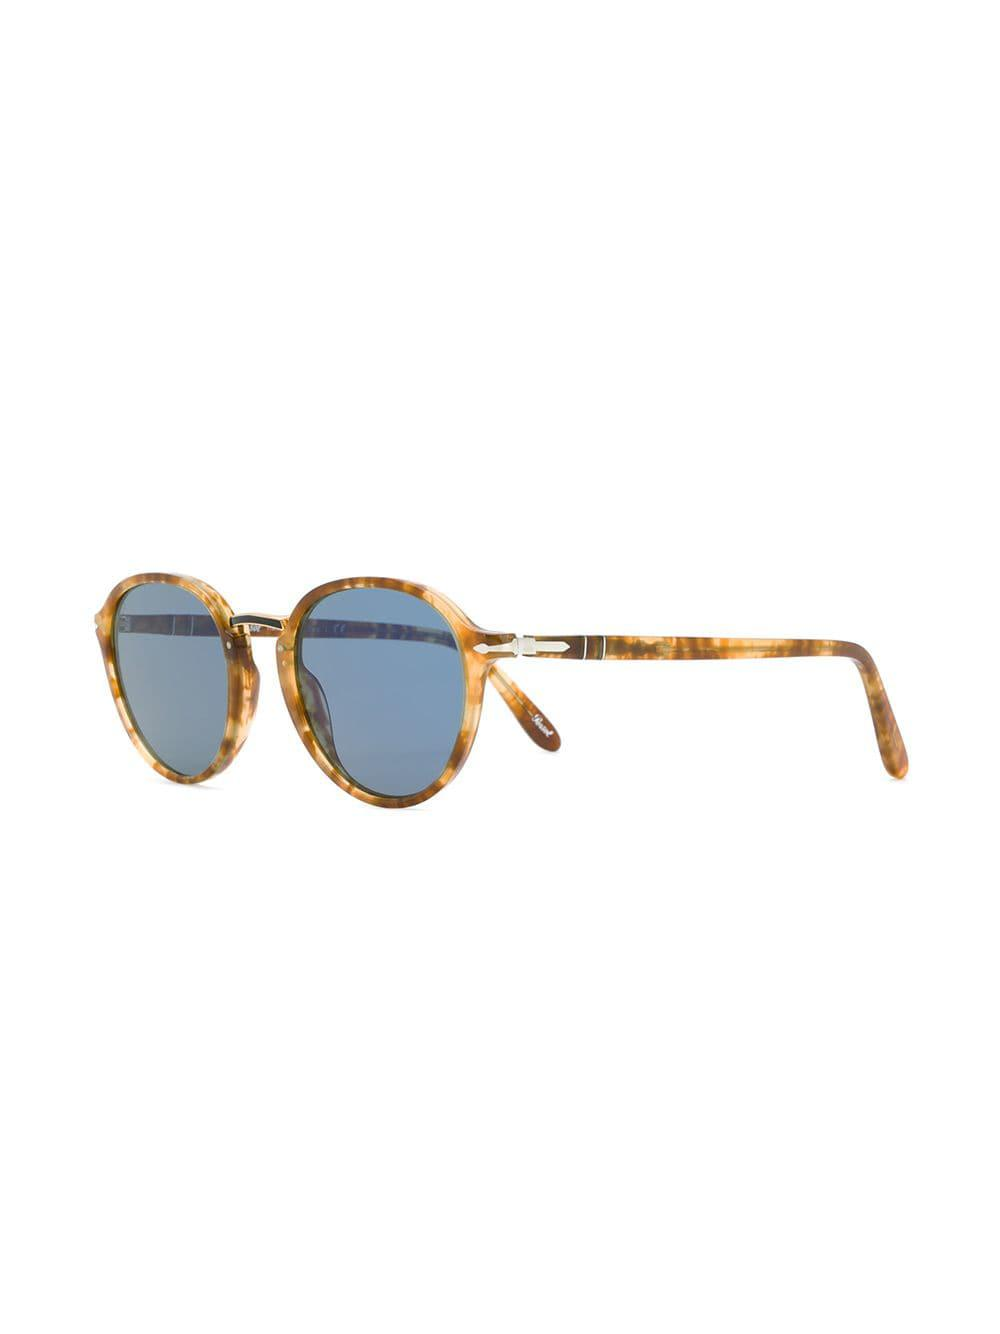 5d58dc6662181 Persol Round Frame Sunglasses in Brown for Men - Lyst